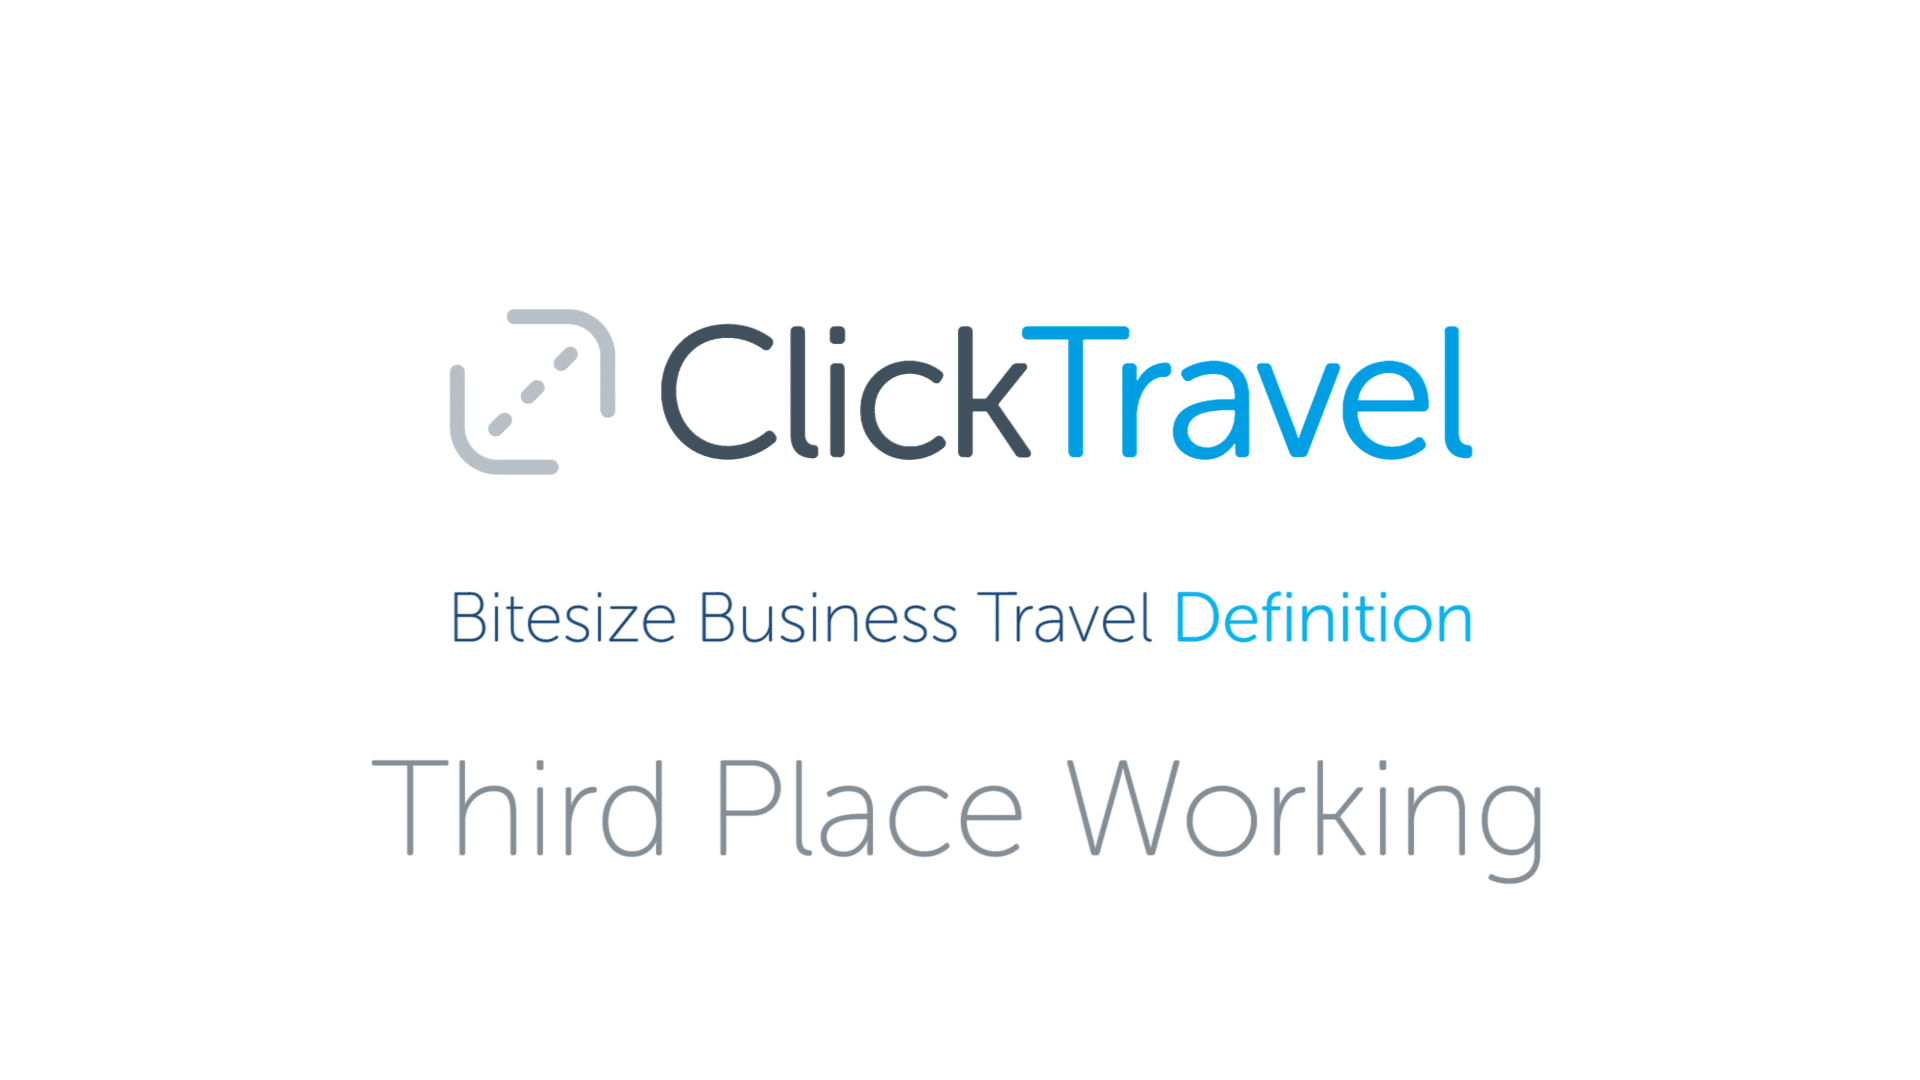 [VIDEO] Bitesize Business Travel Definition: Third place working